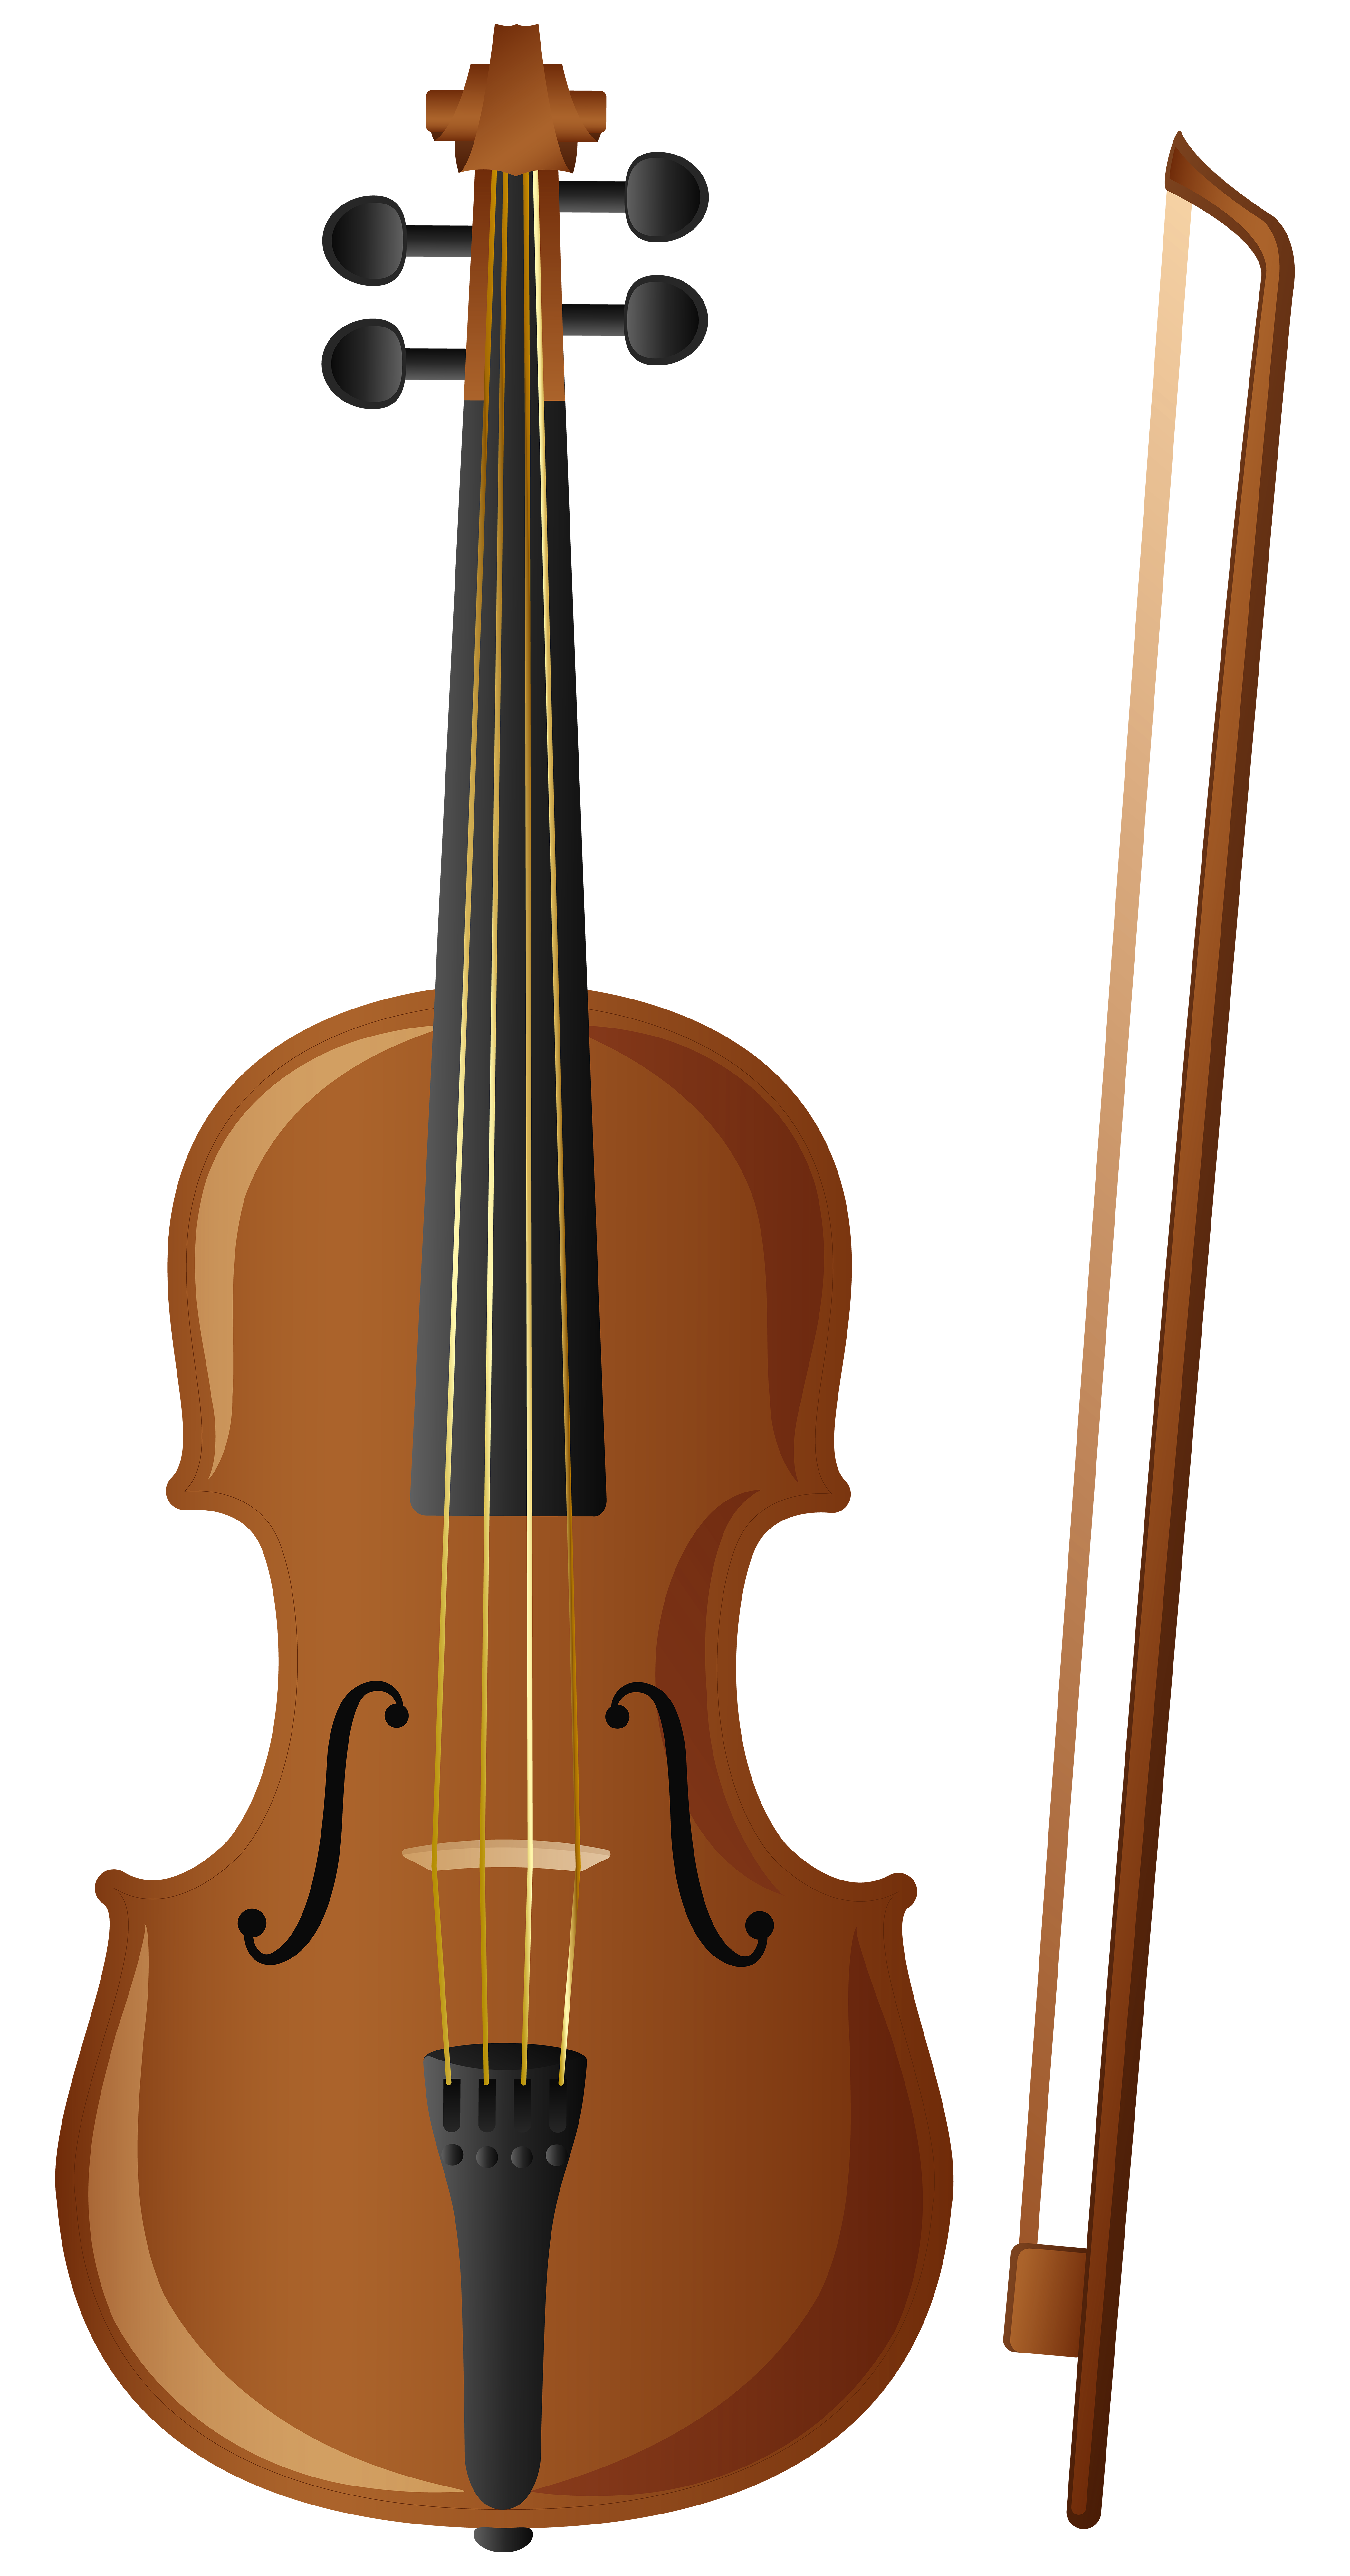 Clipart violin image royalty free Violin PNG Clip Art Image | Gallery Yopriceville - High-Quality ... image royalty free